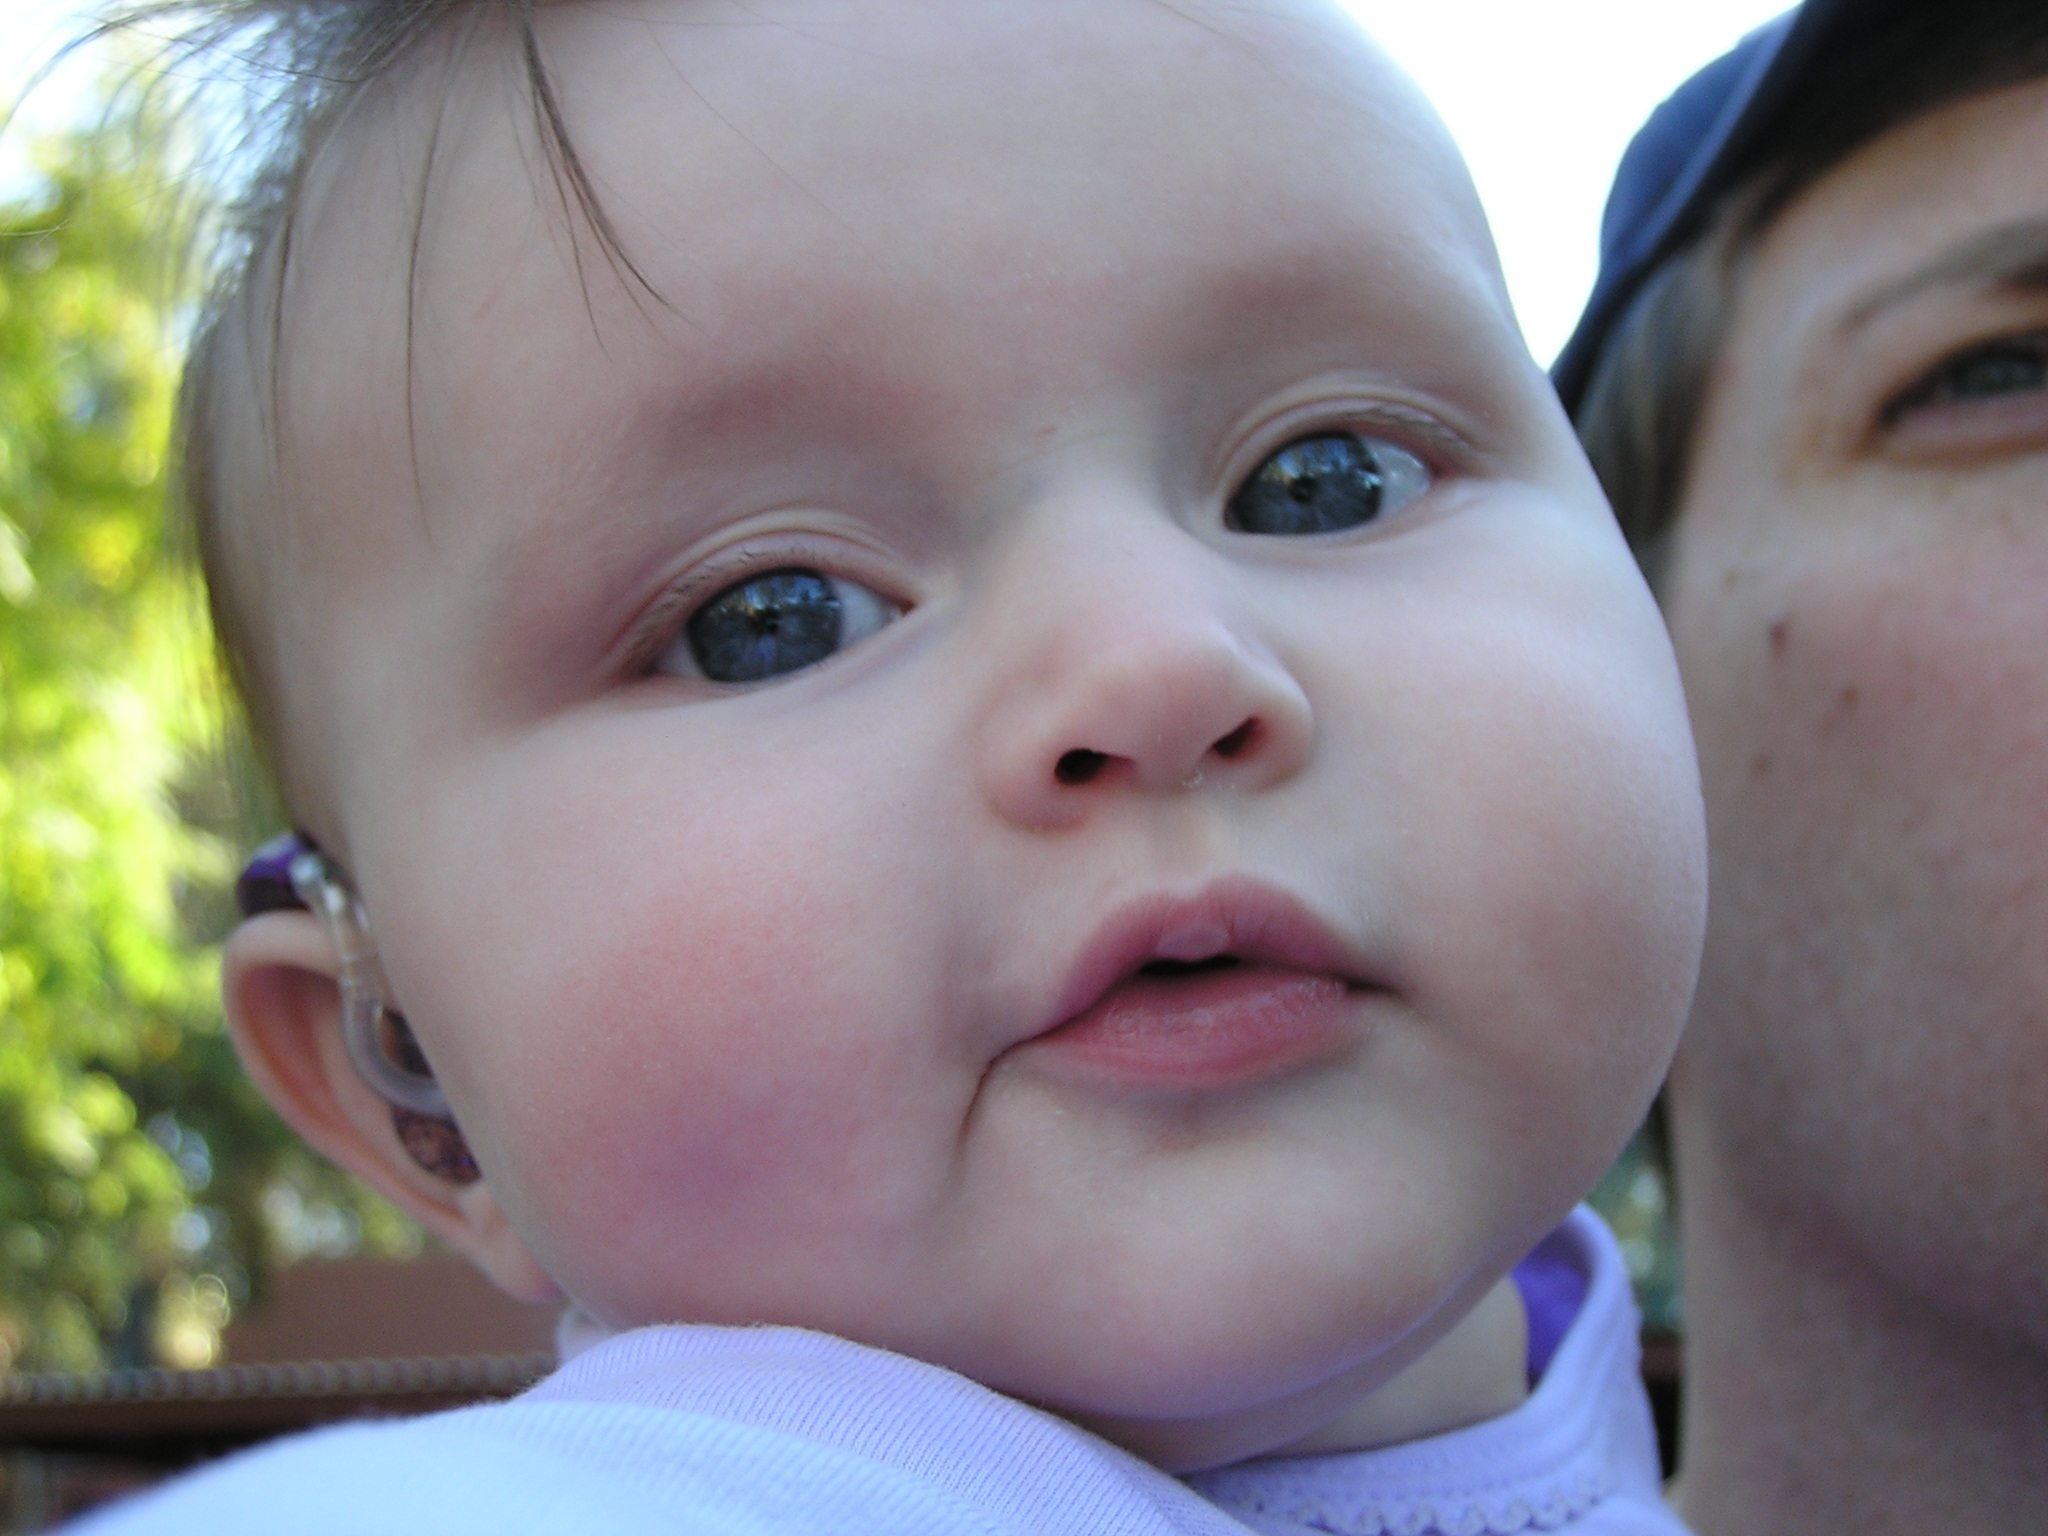 Close up picture of infant girl with hearing aid